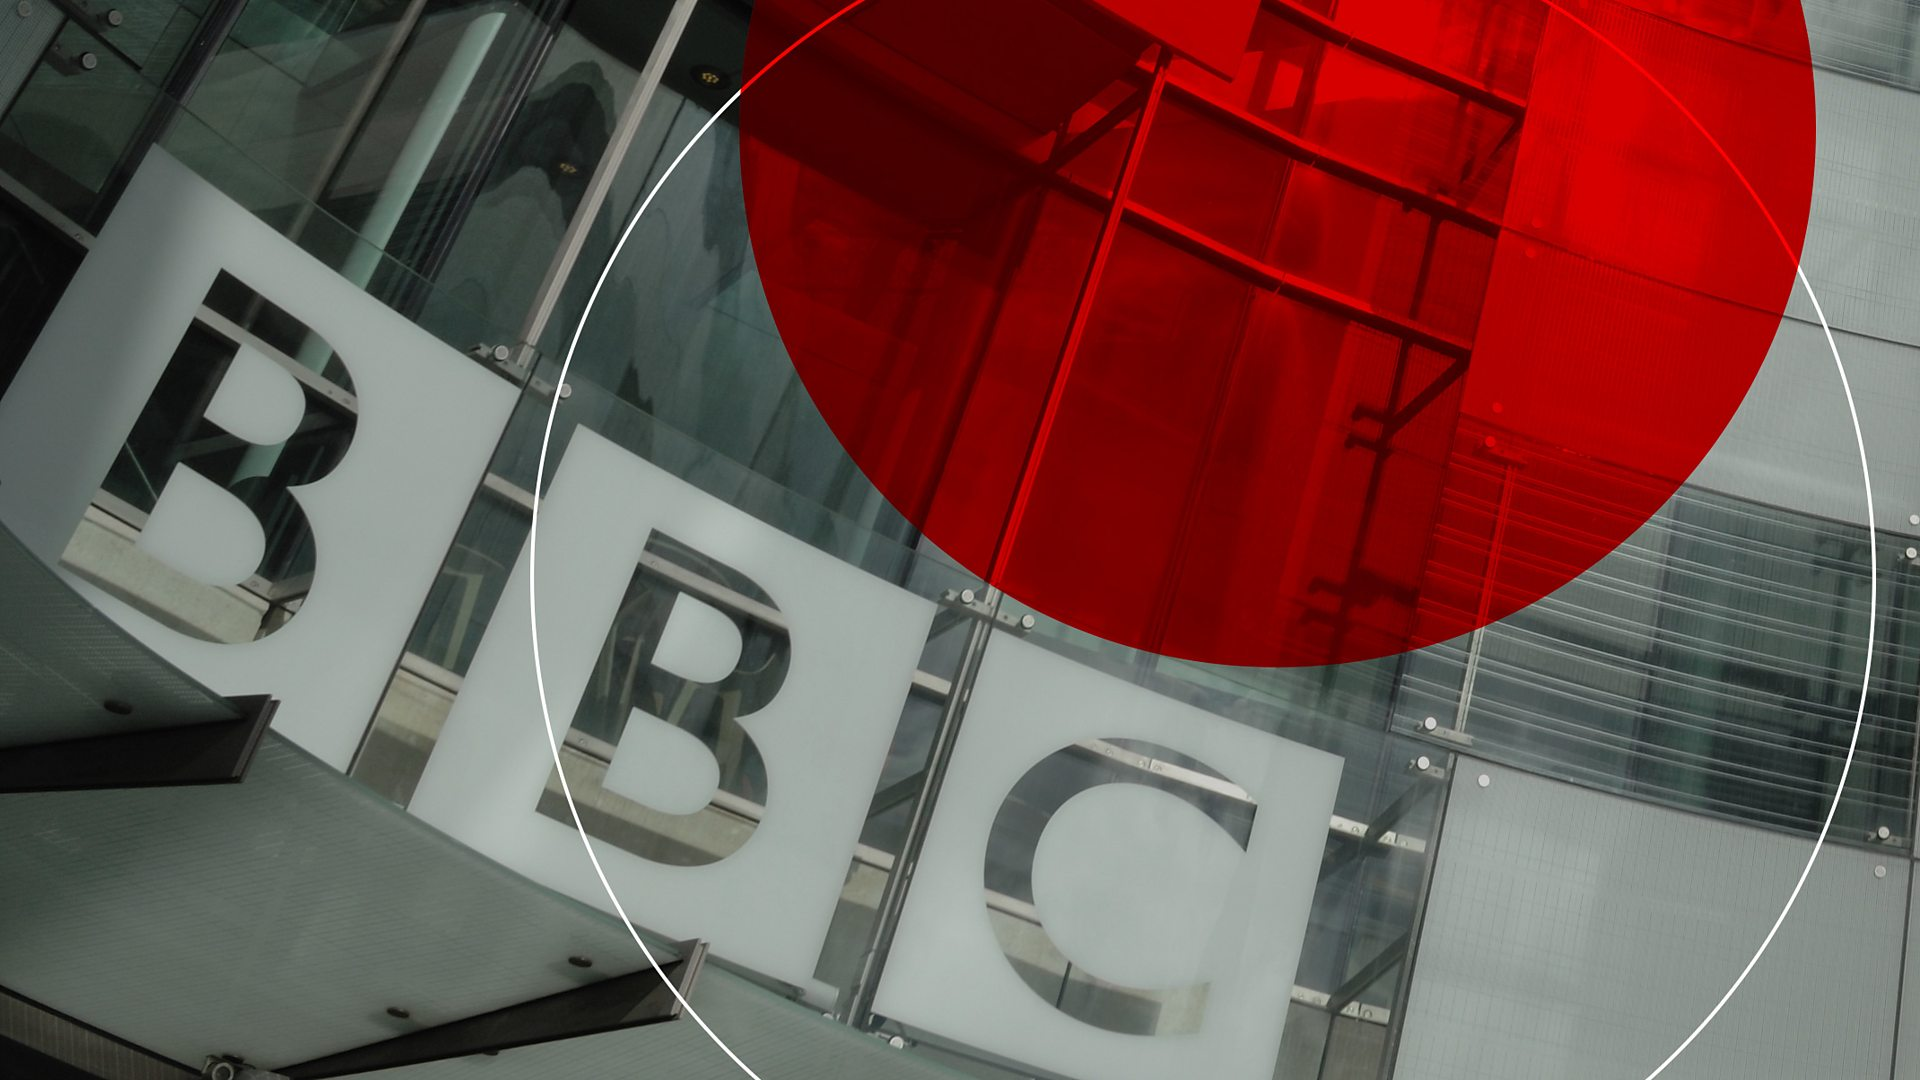 BBC Radio - BBC Radio Contacts & Information - Contact BBC Radio